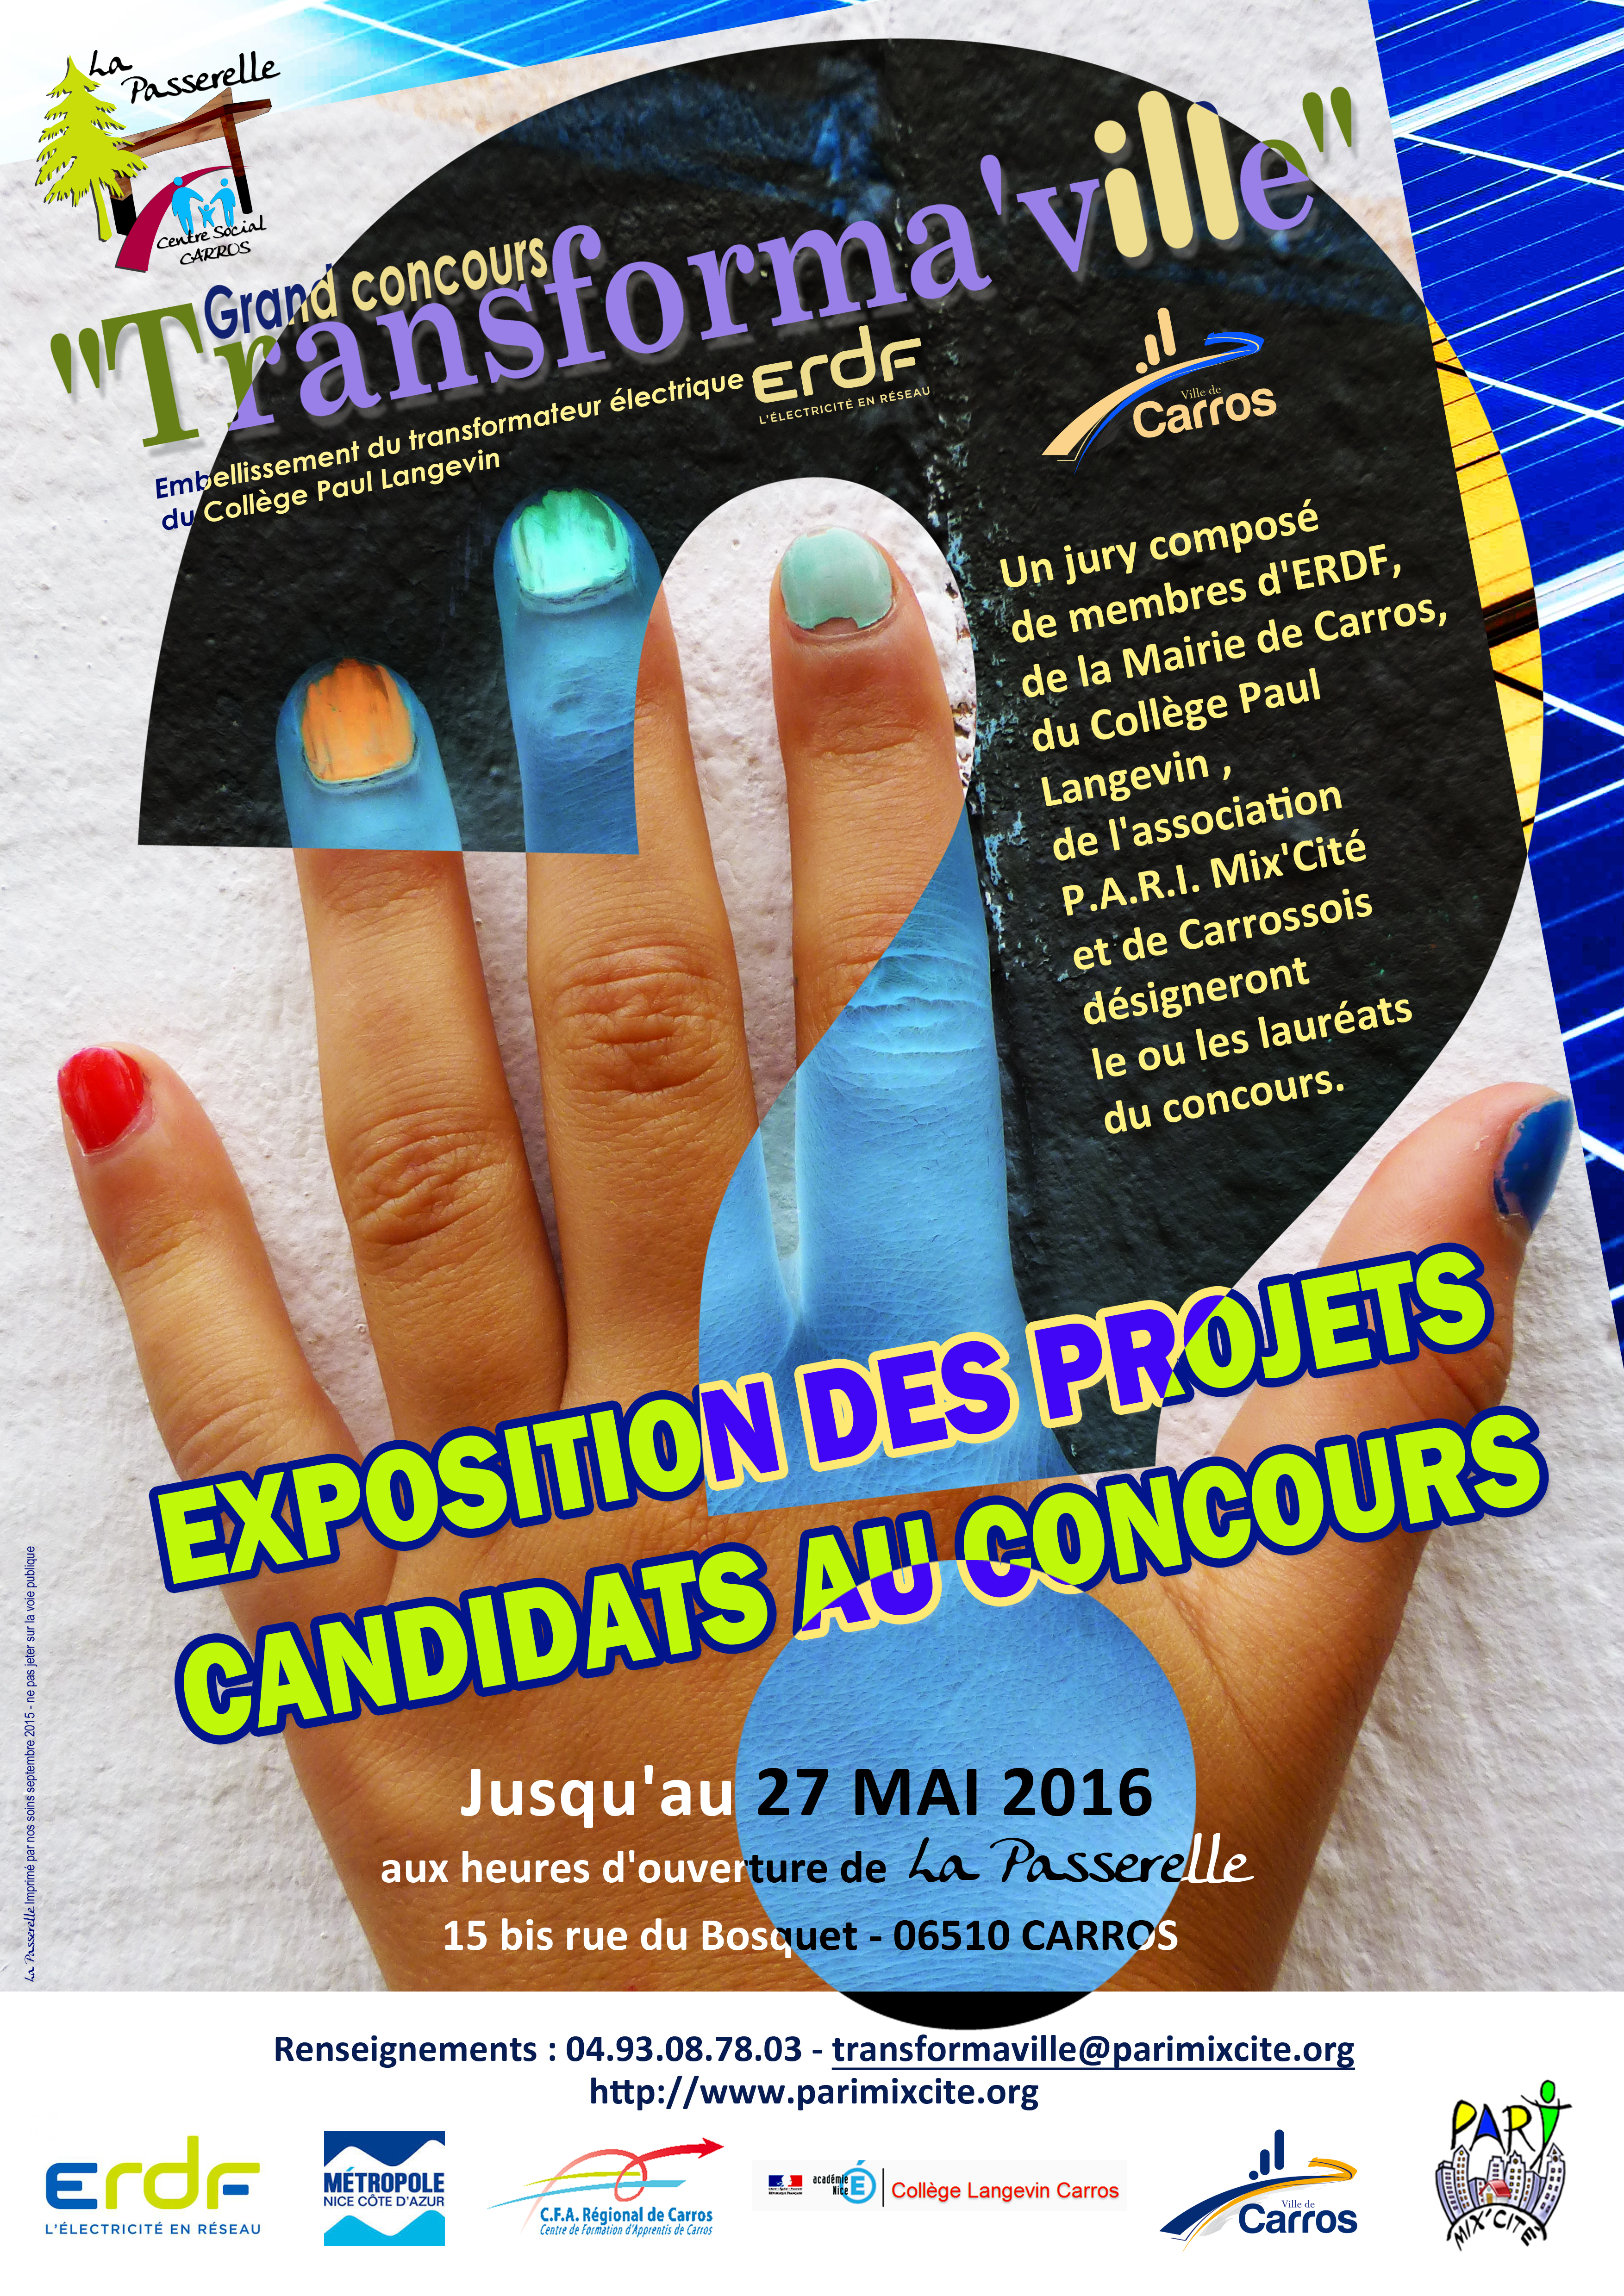 AfficheA3-Expo-projets_ERDF